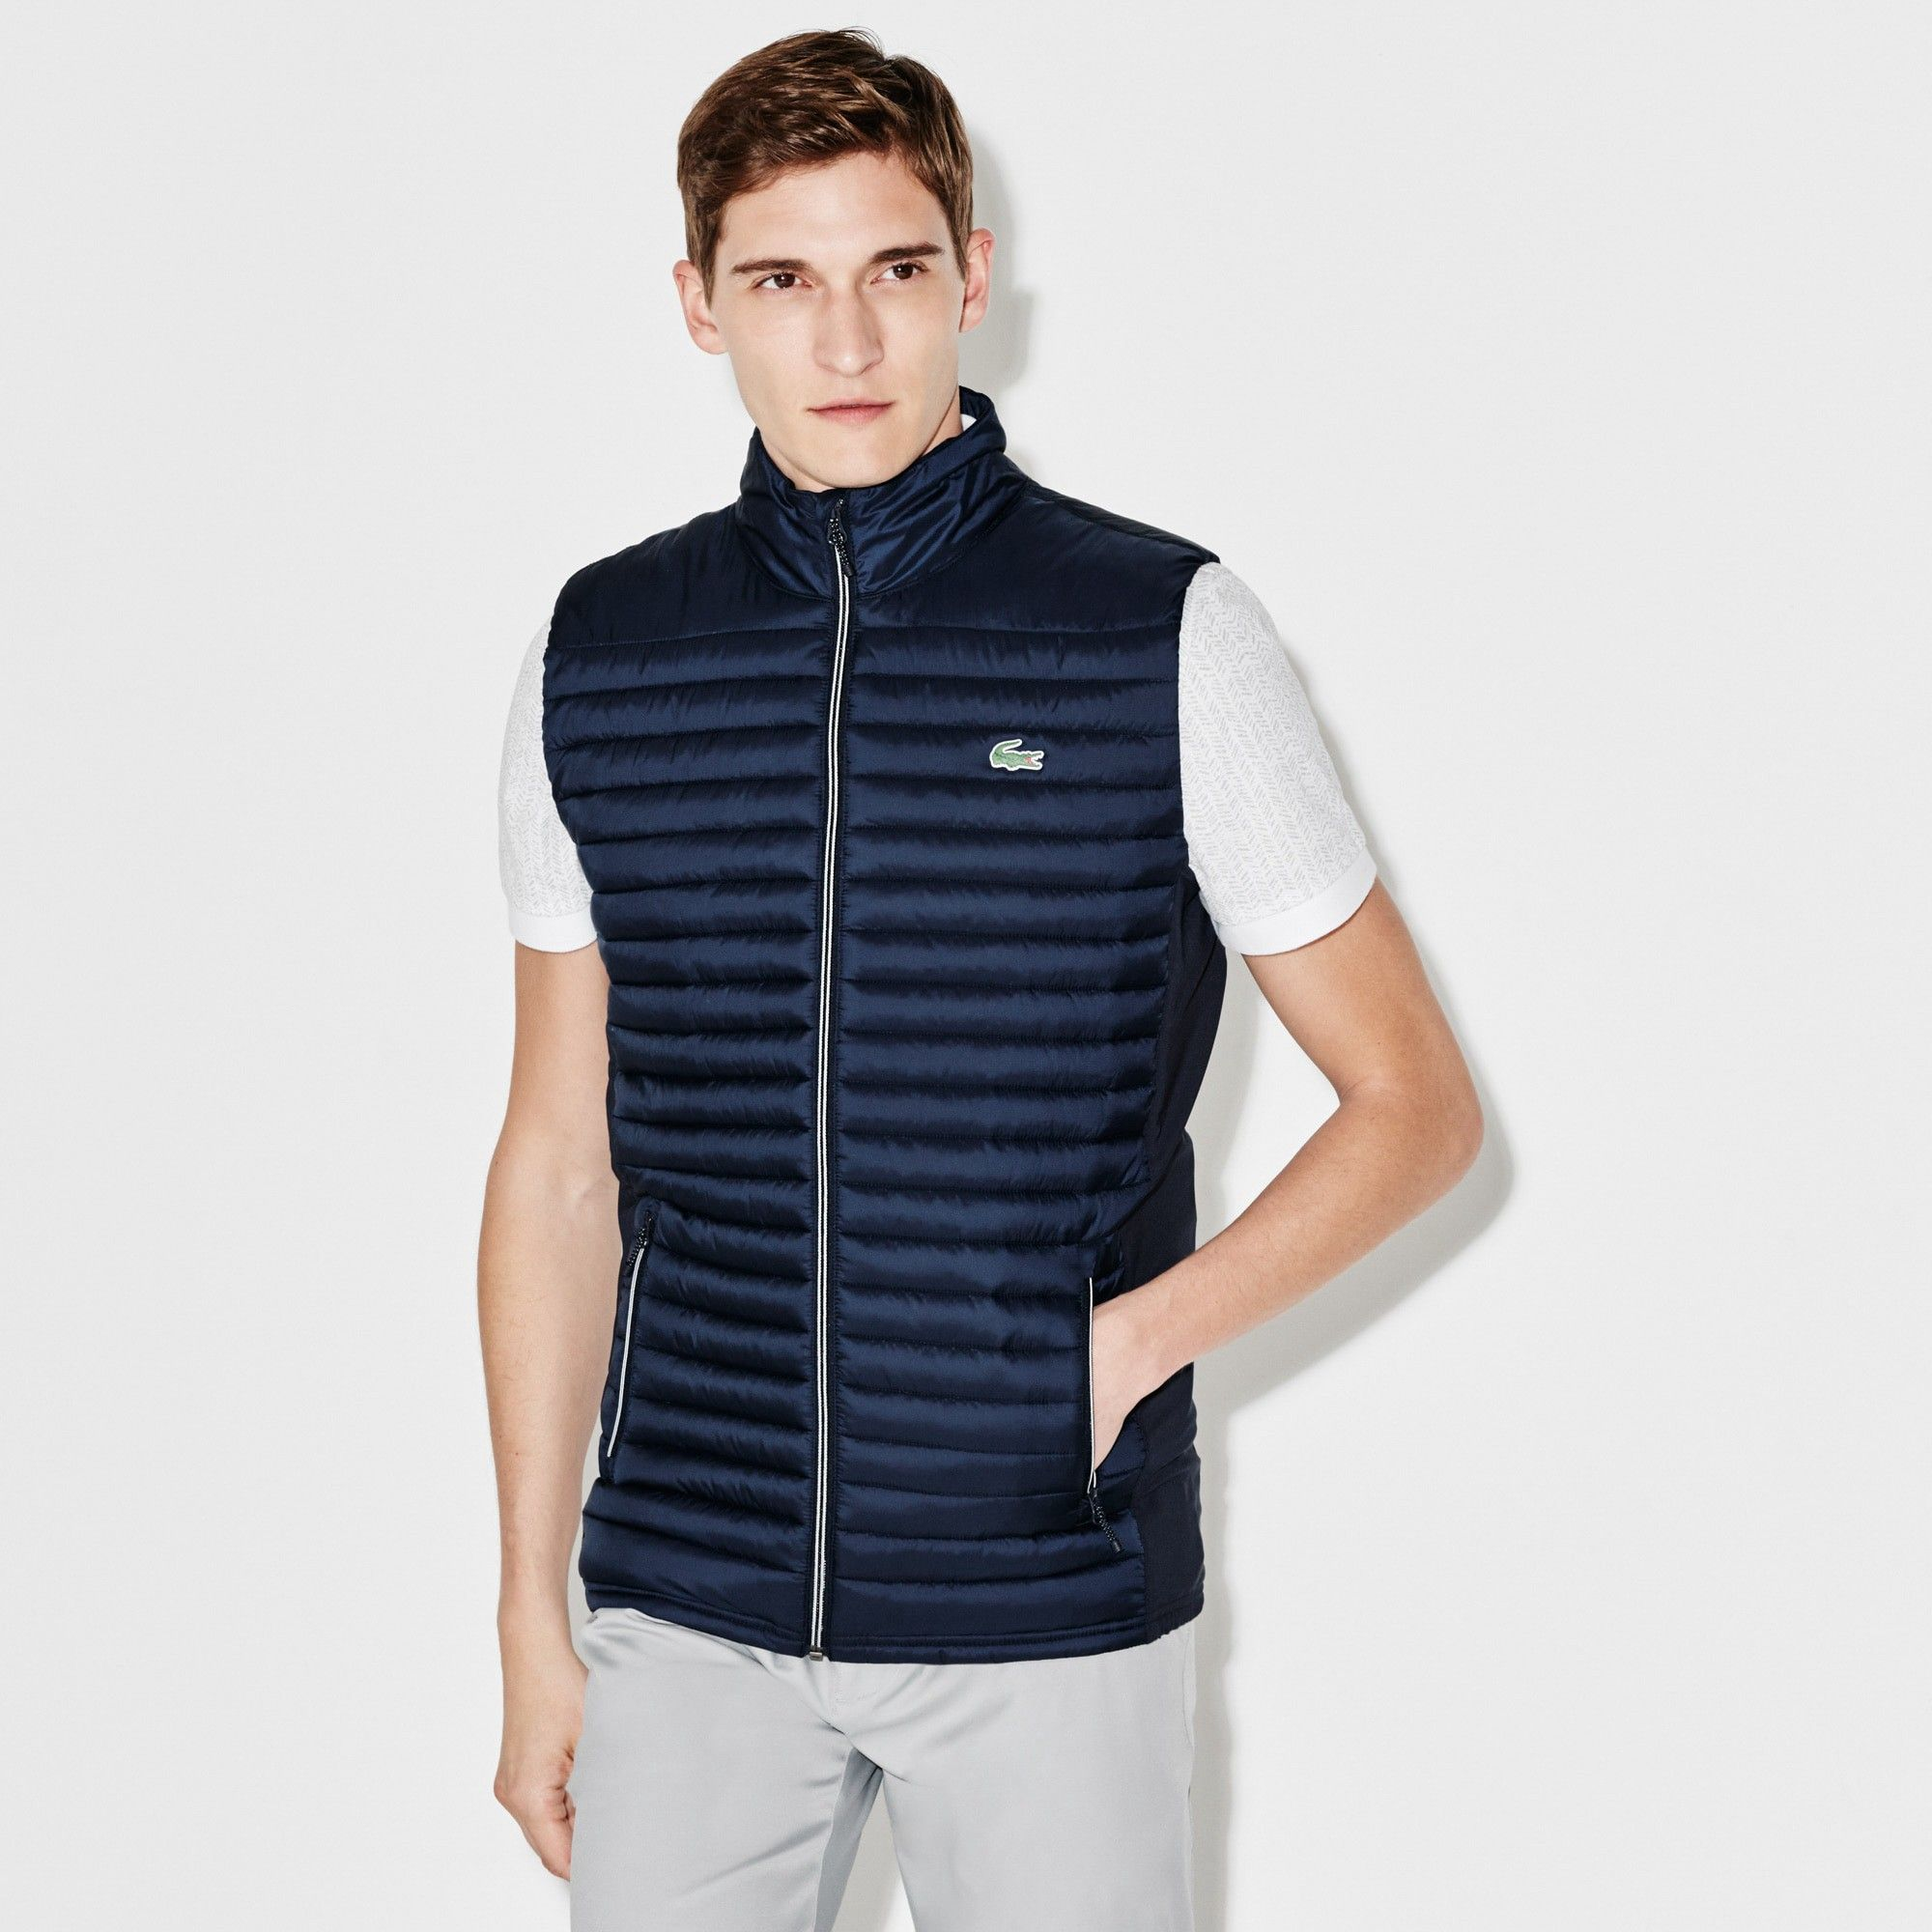 91b76e18f15a LACOSTE Men s SPORT Golf Water-resistant Quilted Vest - navy blue navy  blue.  lacoste  cloth